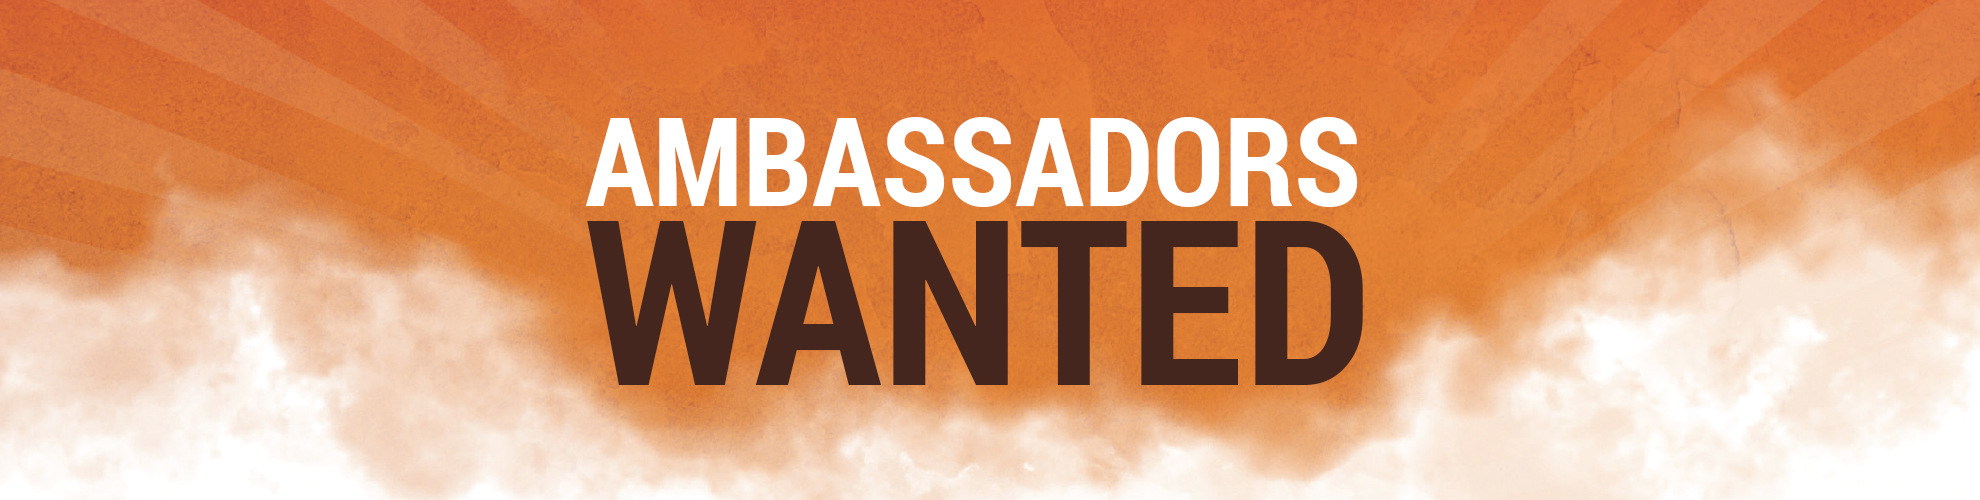 Ambassador Wanted